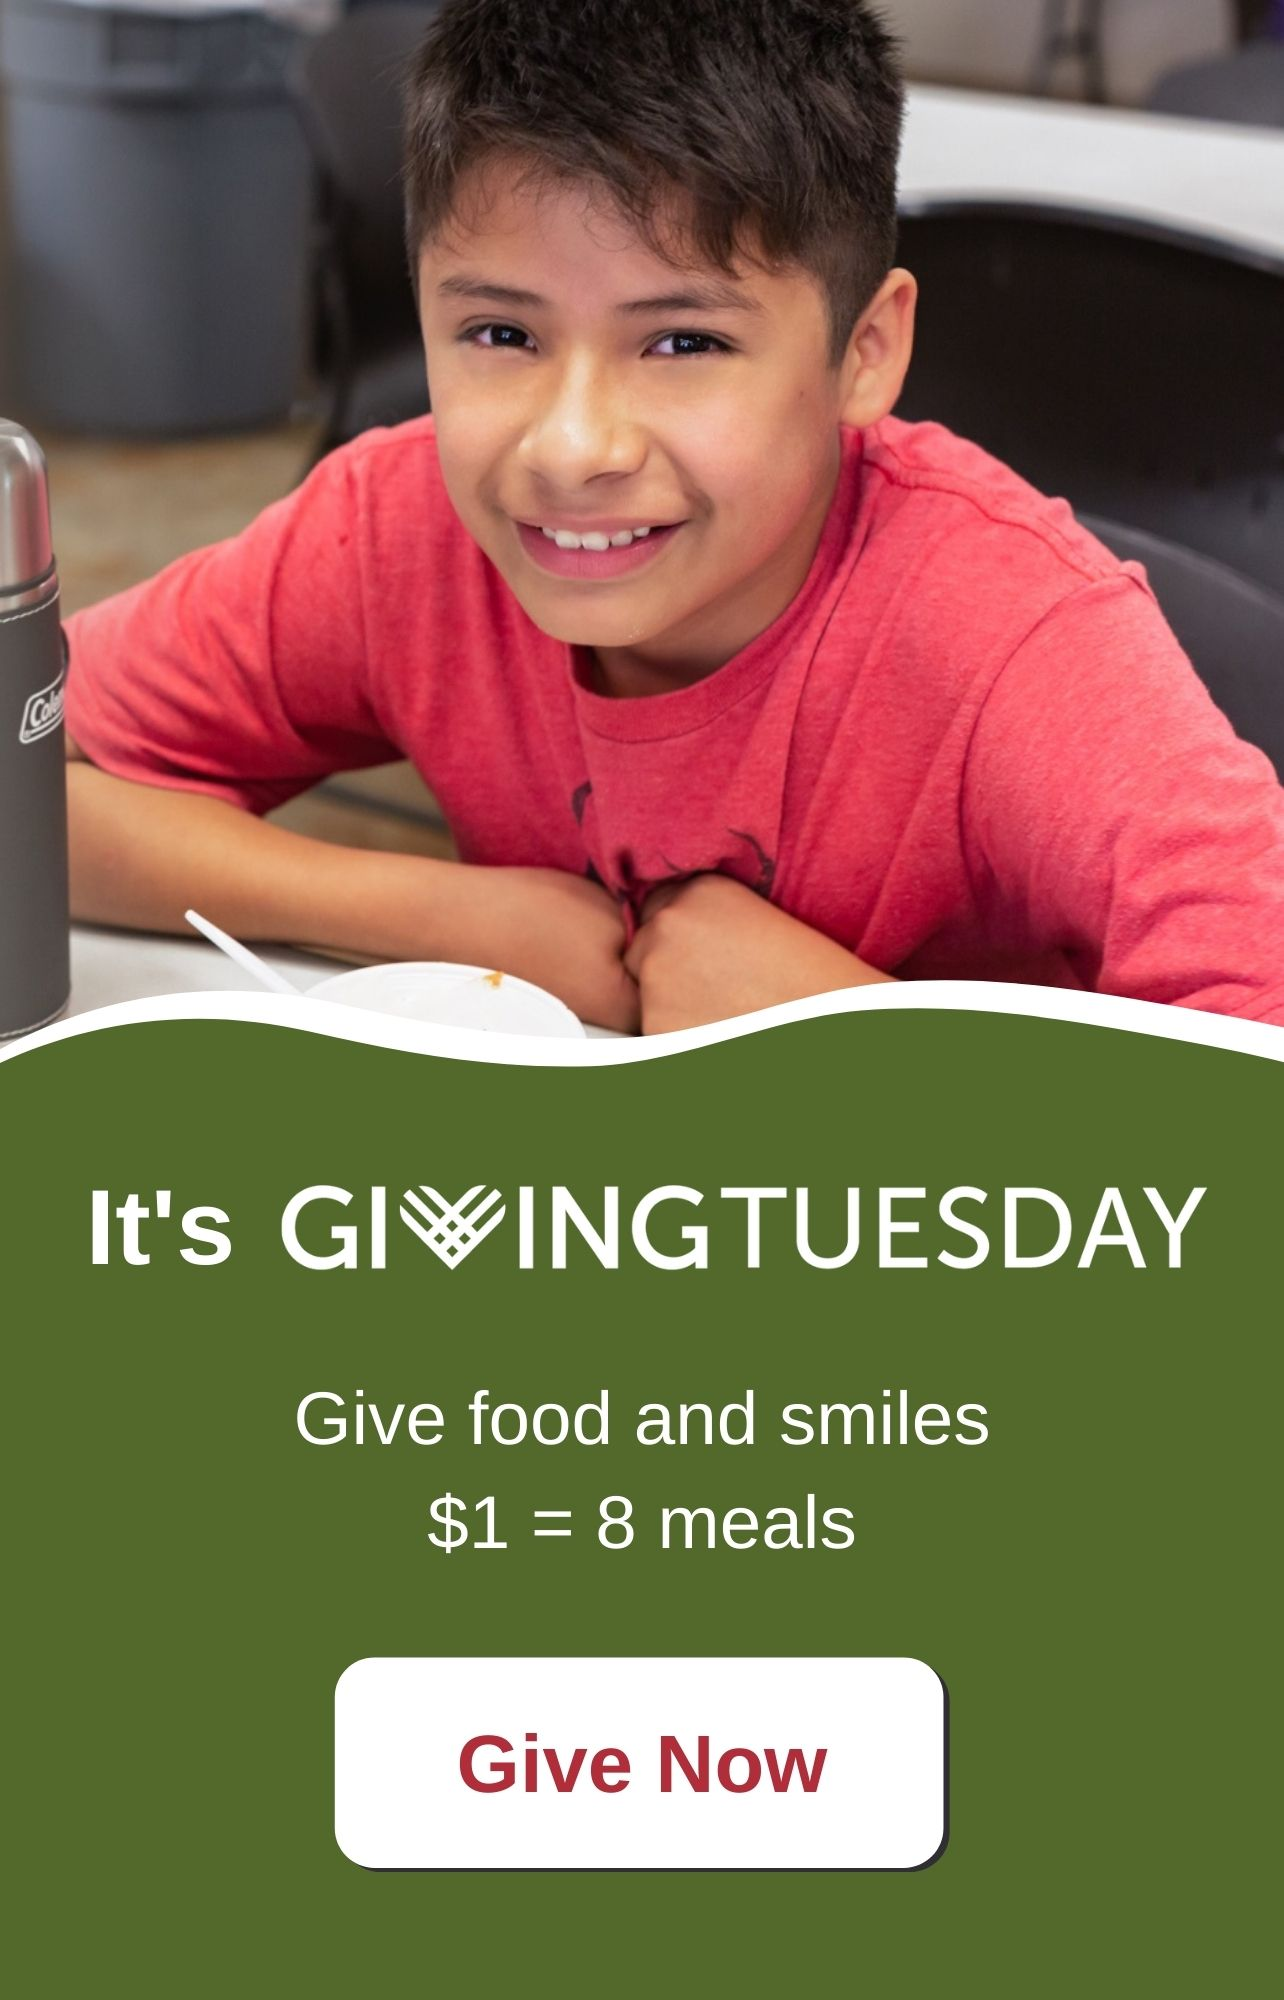 GivingTuesday $1 = 8 meals